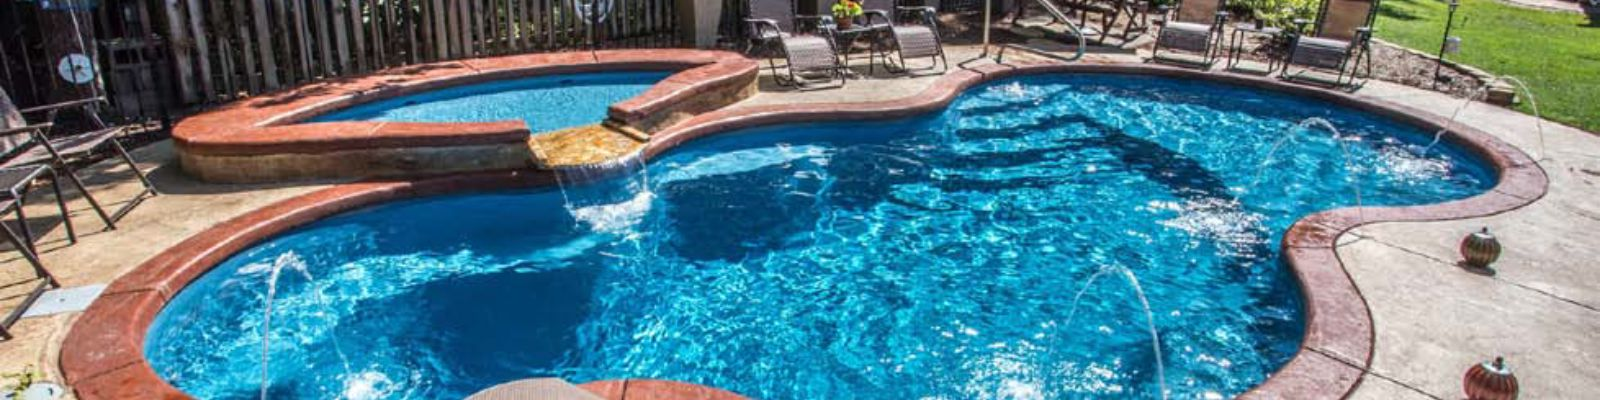 Custom Fibreglass Swimming Pools | Creative Pools Ltd.